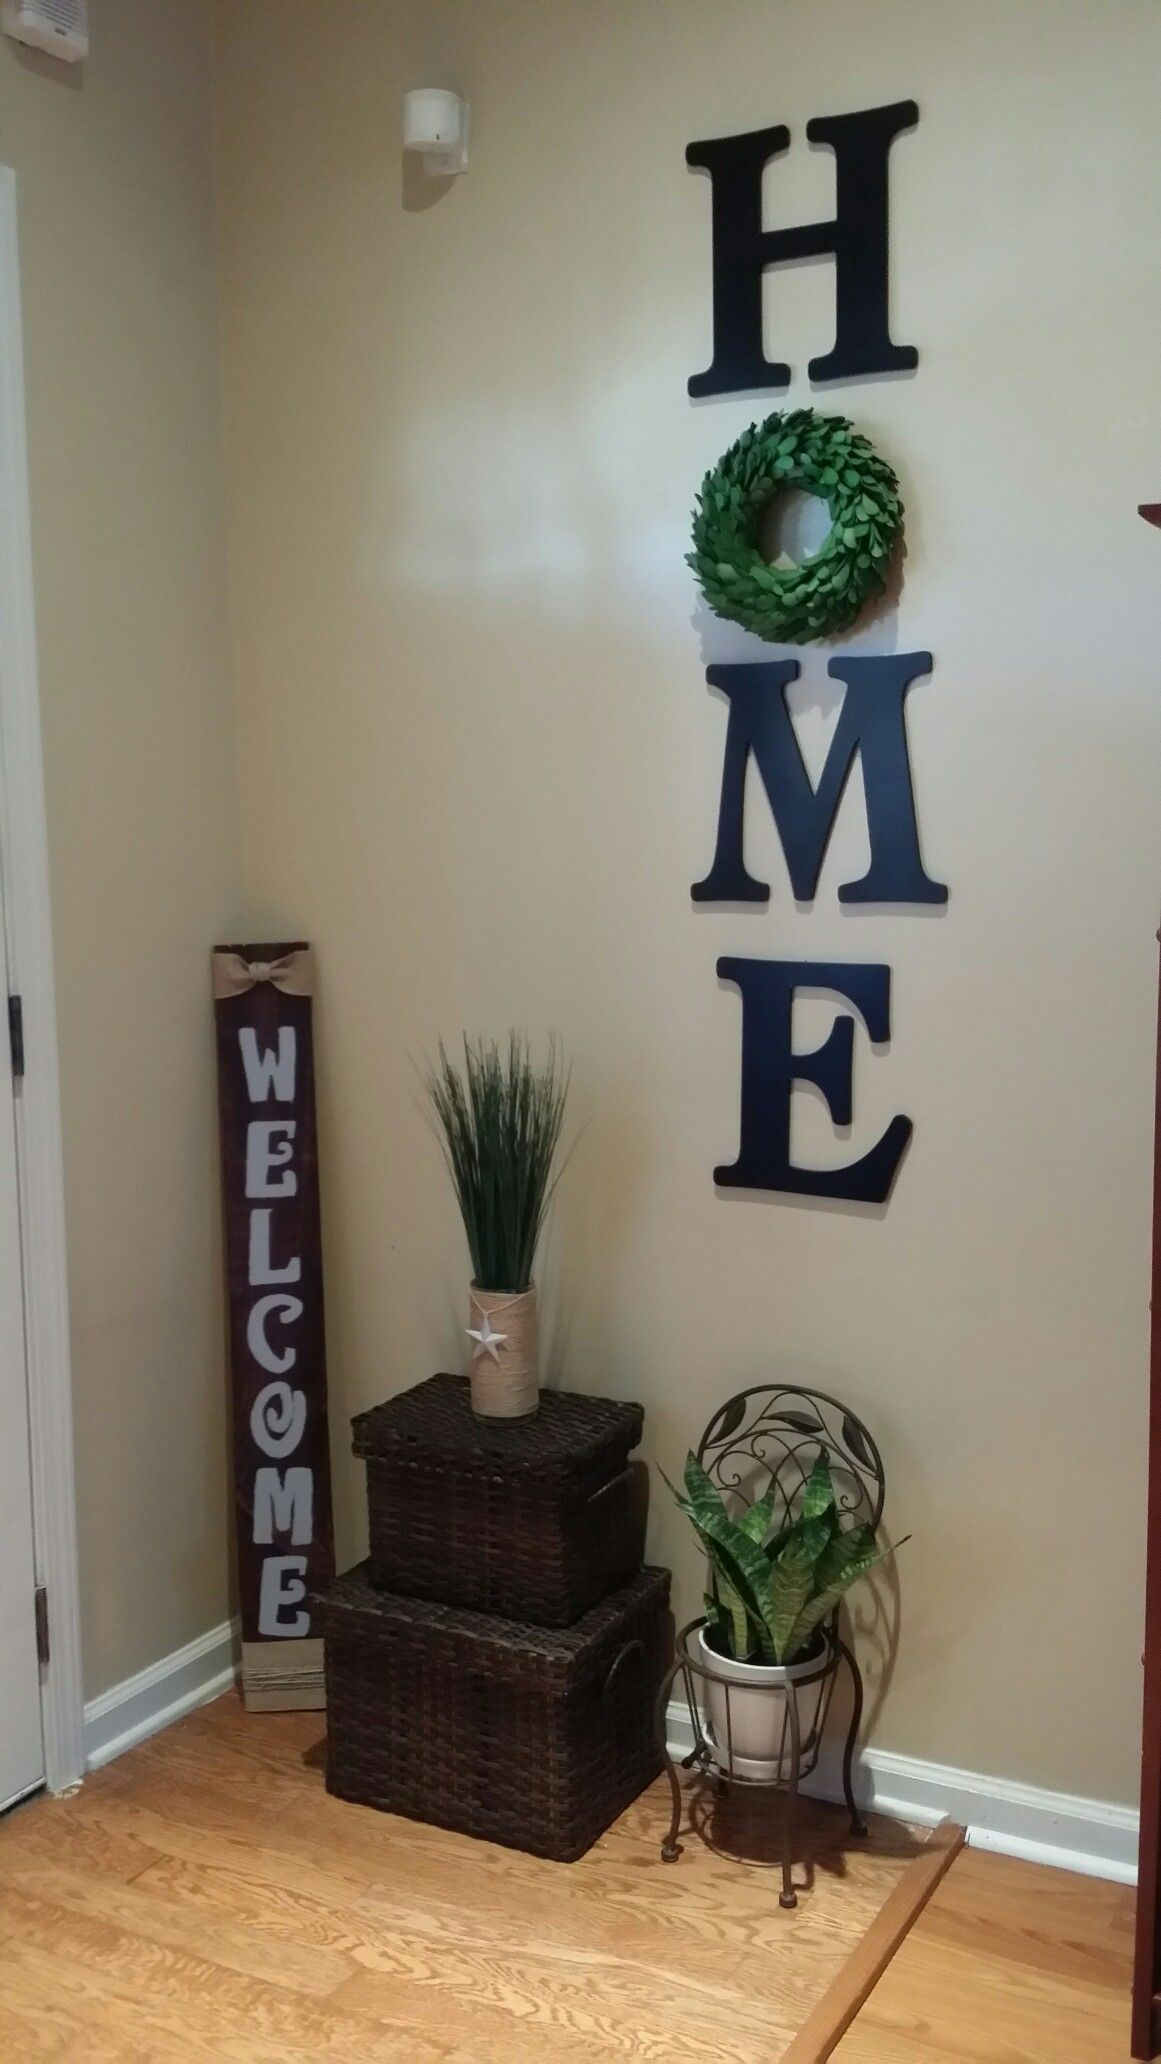 Wood Letters Home With Wreath Wall Decor Letter Wall Decor